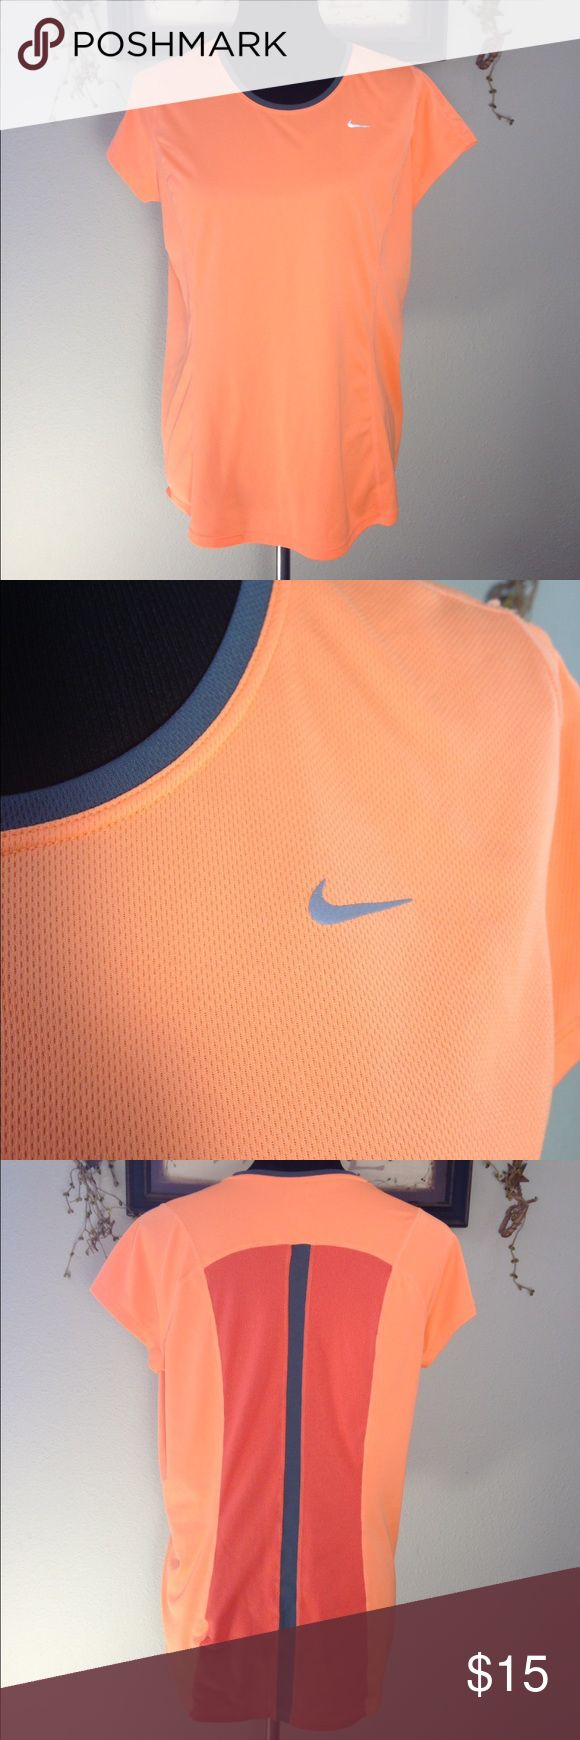 Nike Running Top Women's orange and gray Nike running shirt. There is a small snag as shown in the last picture. Nike Tops Tees - Short Sleeve